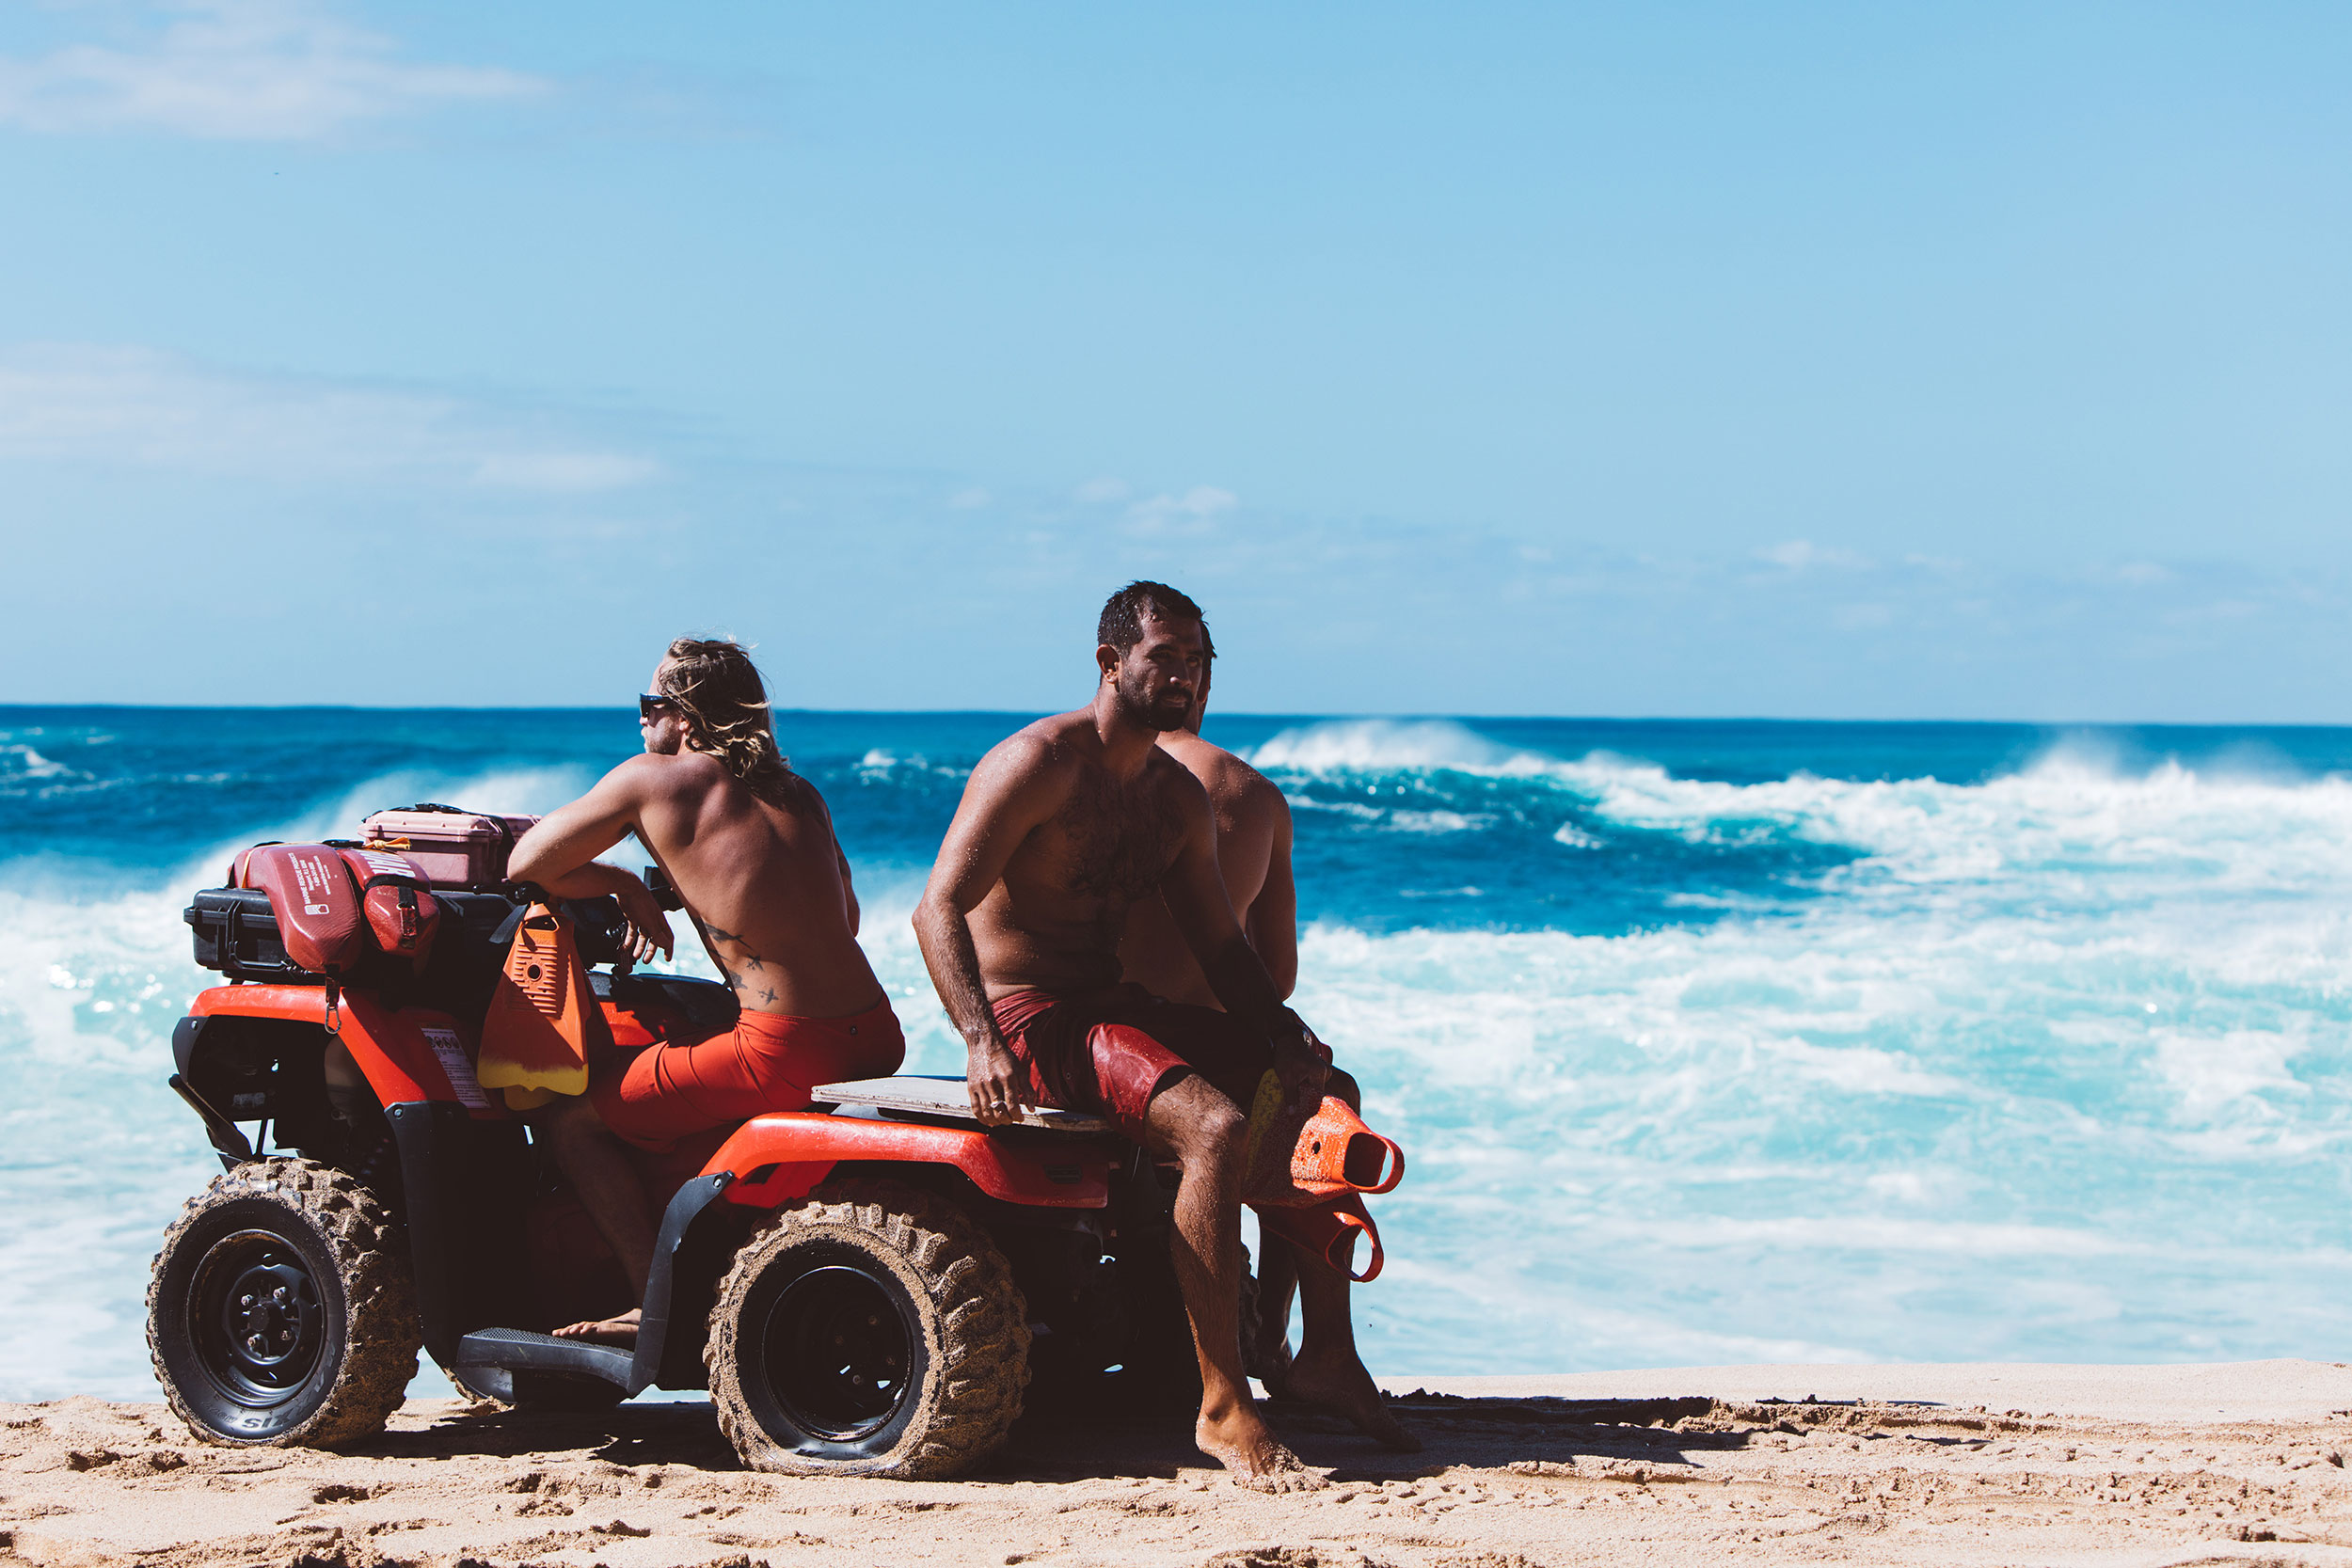 north shore lifeguards